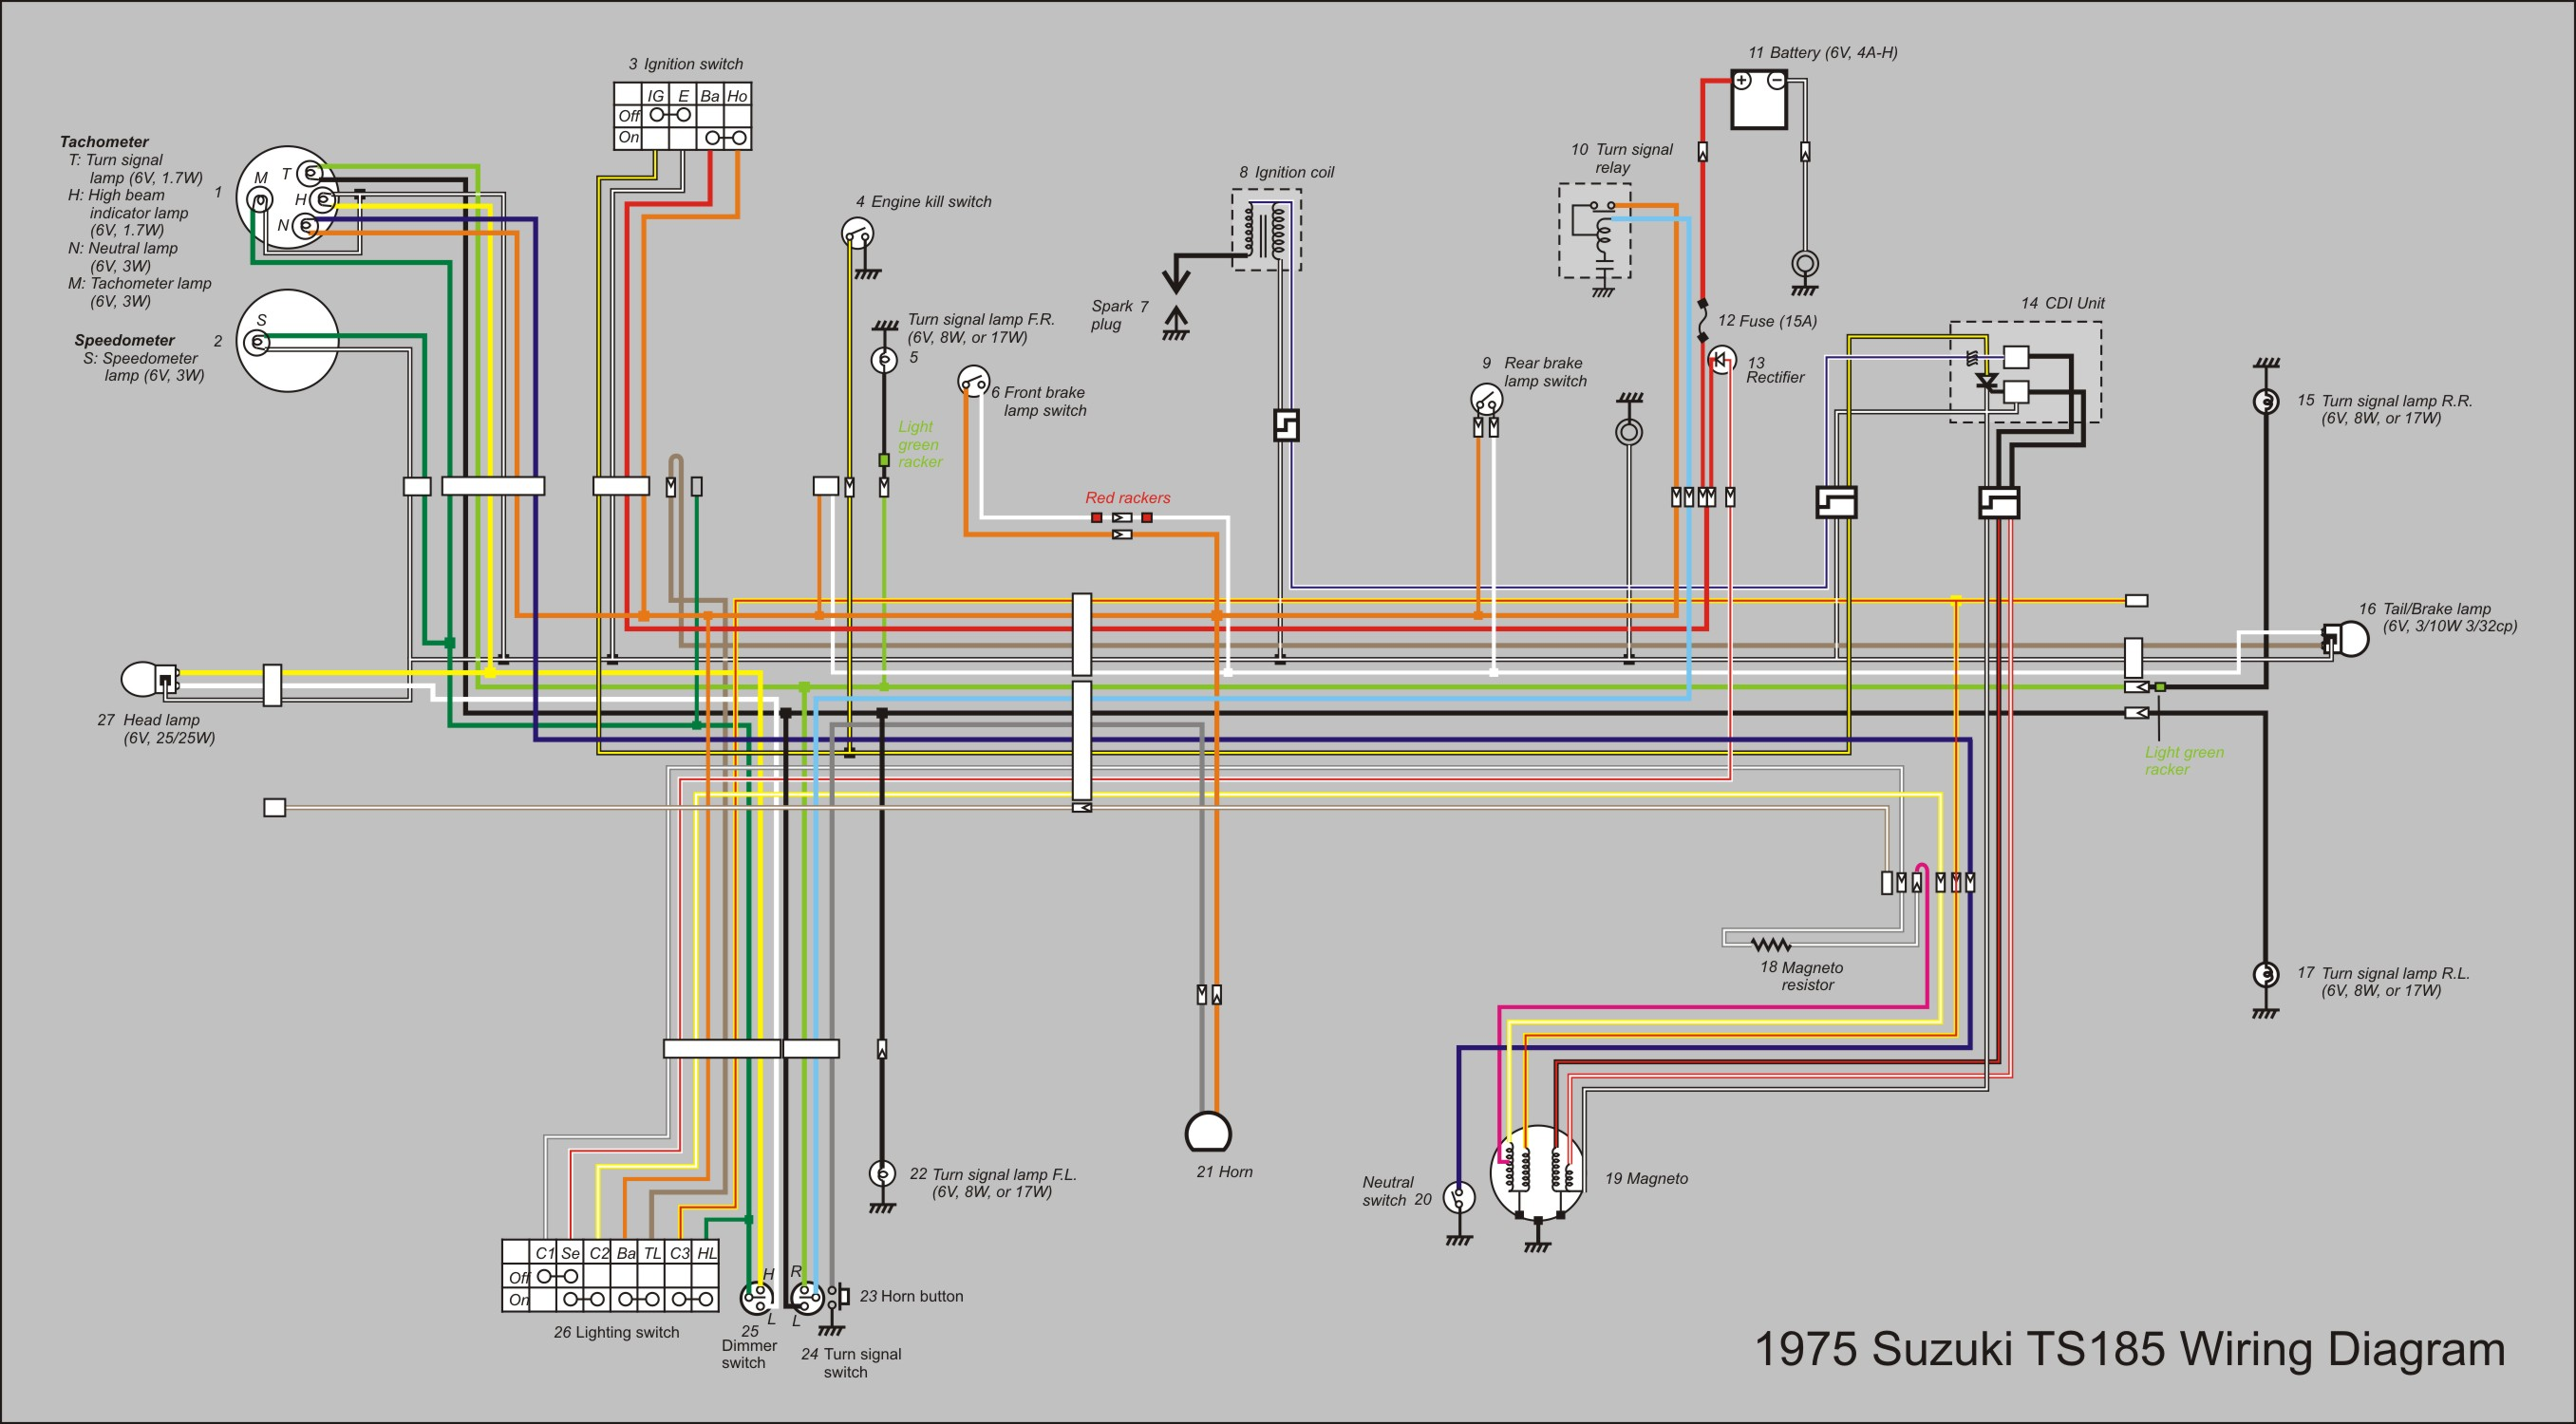 TS185_Wiring_Diagram_new file ts185 wiring diagram new jpg wikimedia commons,1974 Suzuki Ts 185 Wiring Diagram